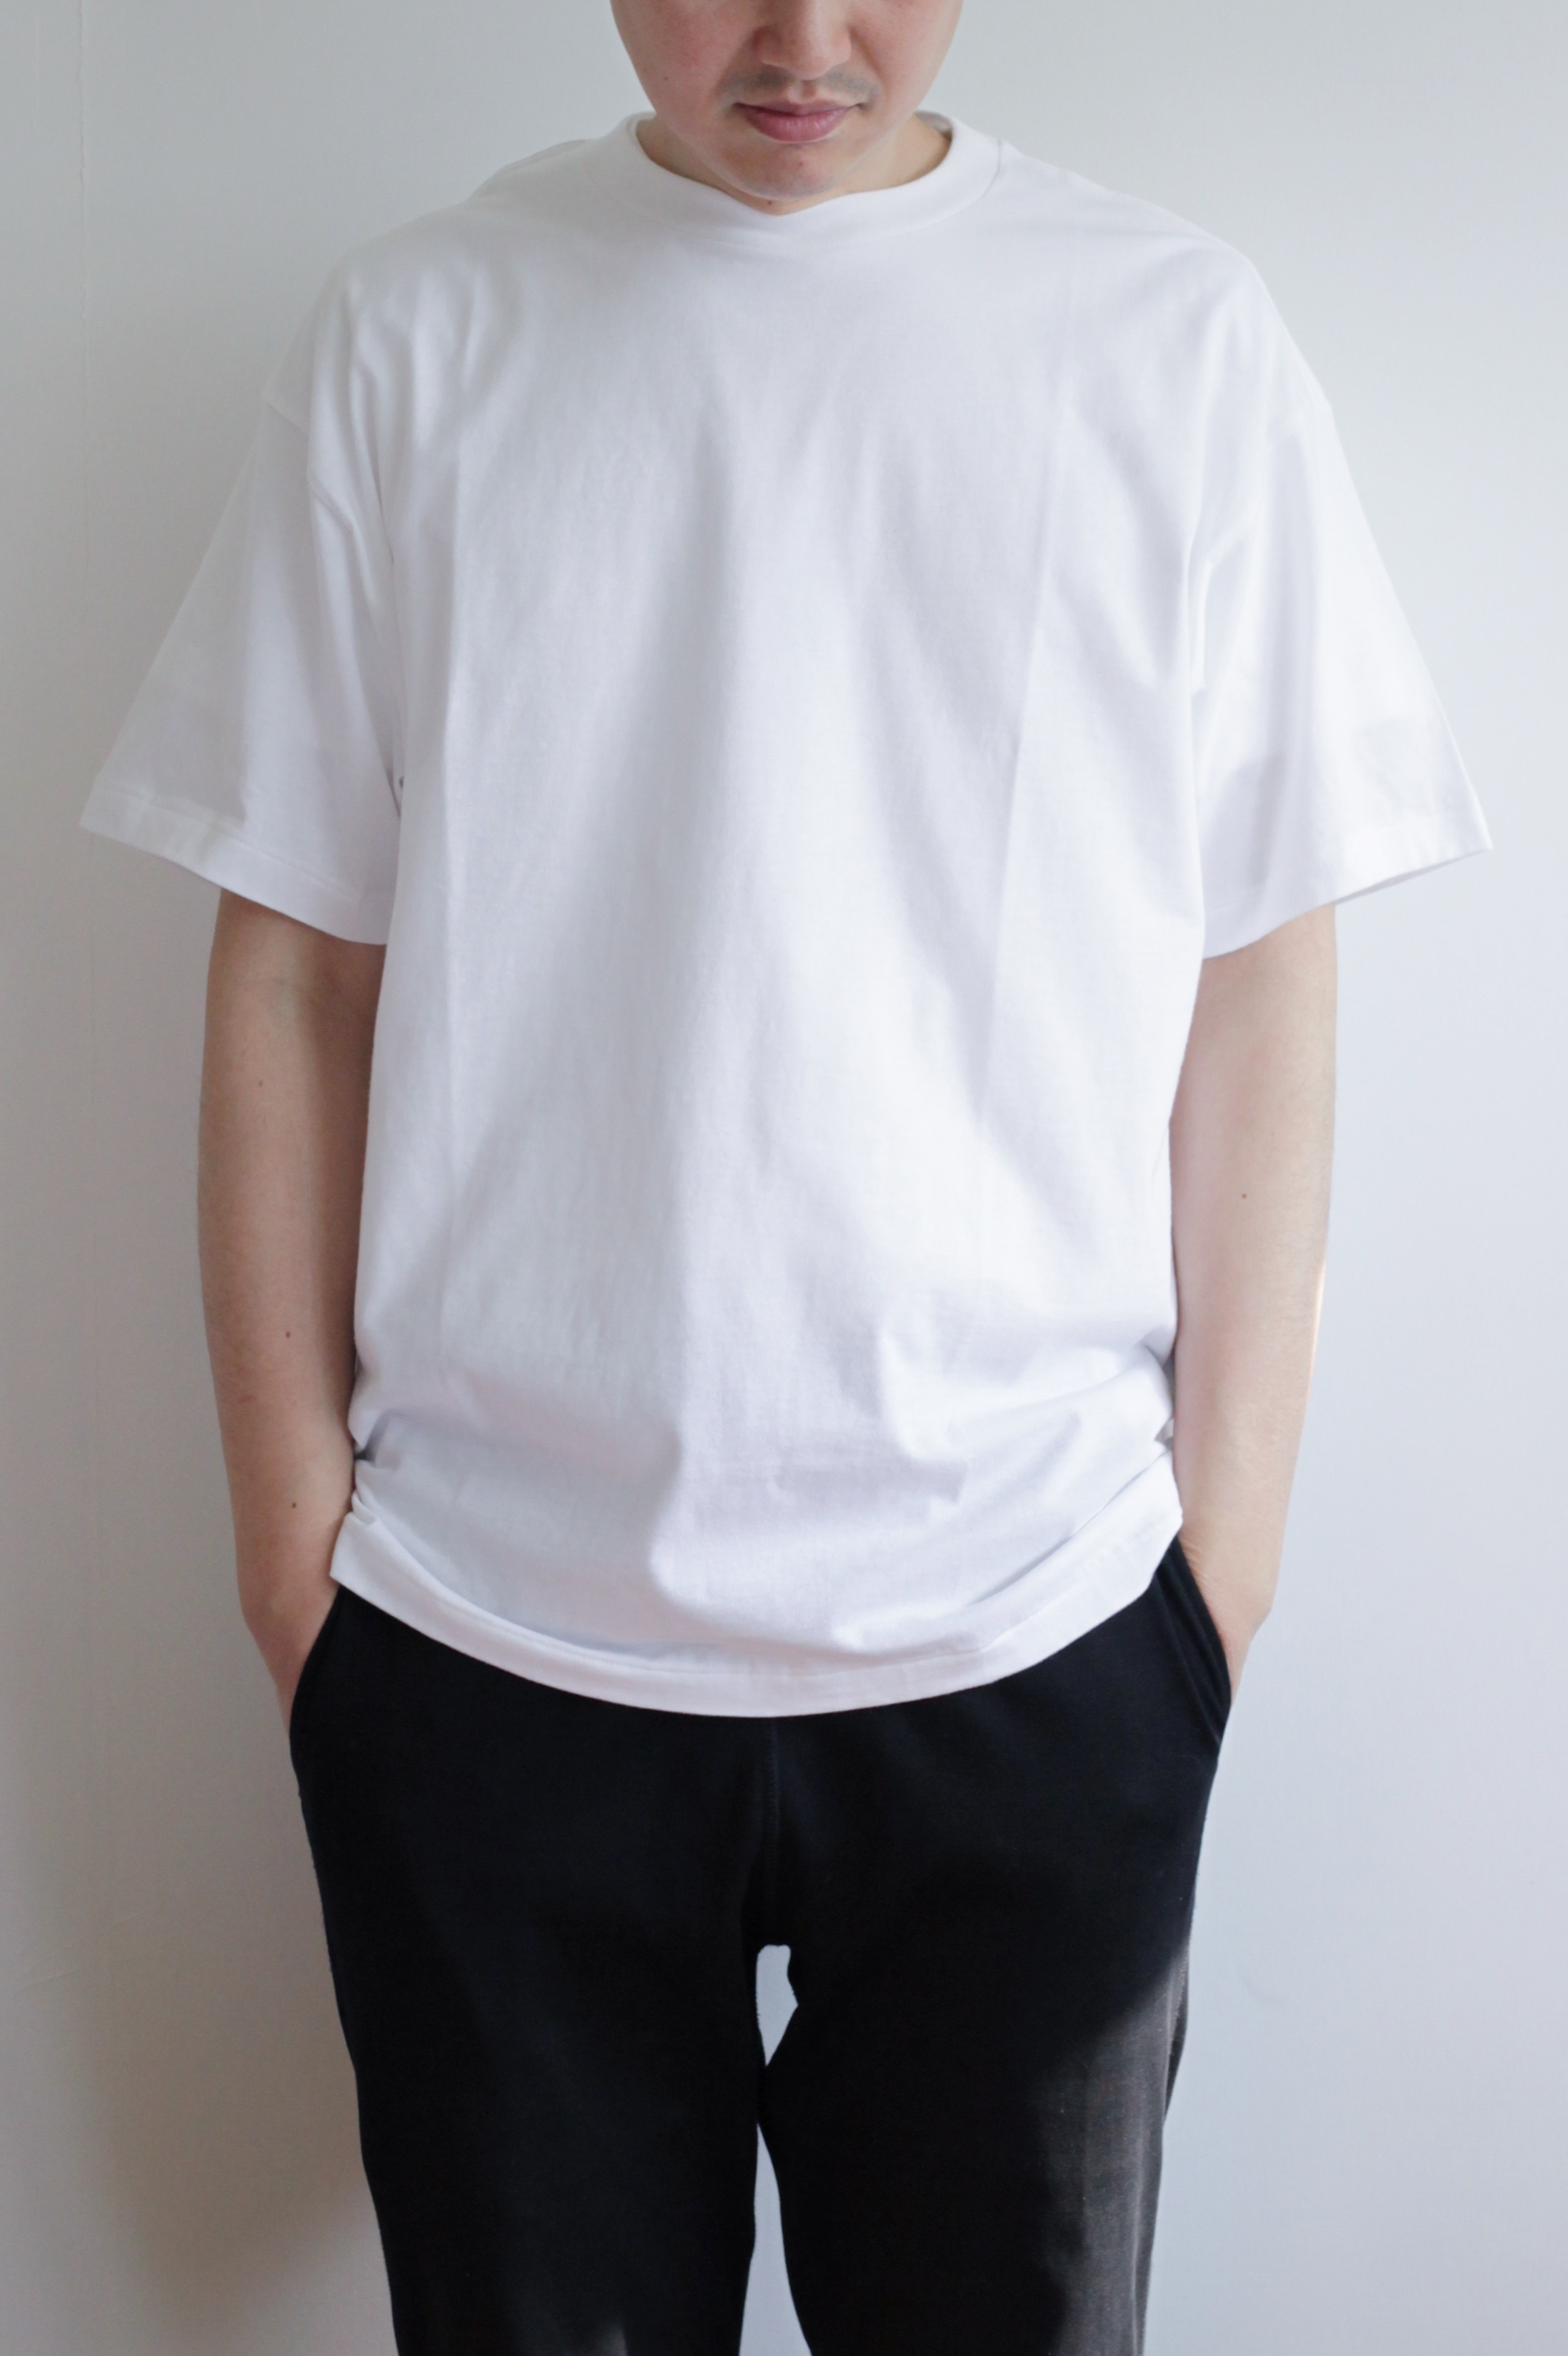 【N.HOOLYWOOD(エヌハリウッド)】 SPRING2020 2PACK T-SHIRT 9201-CS05-068 pieces